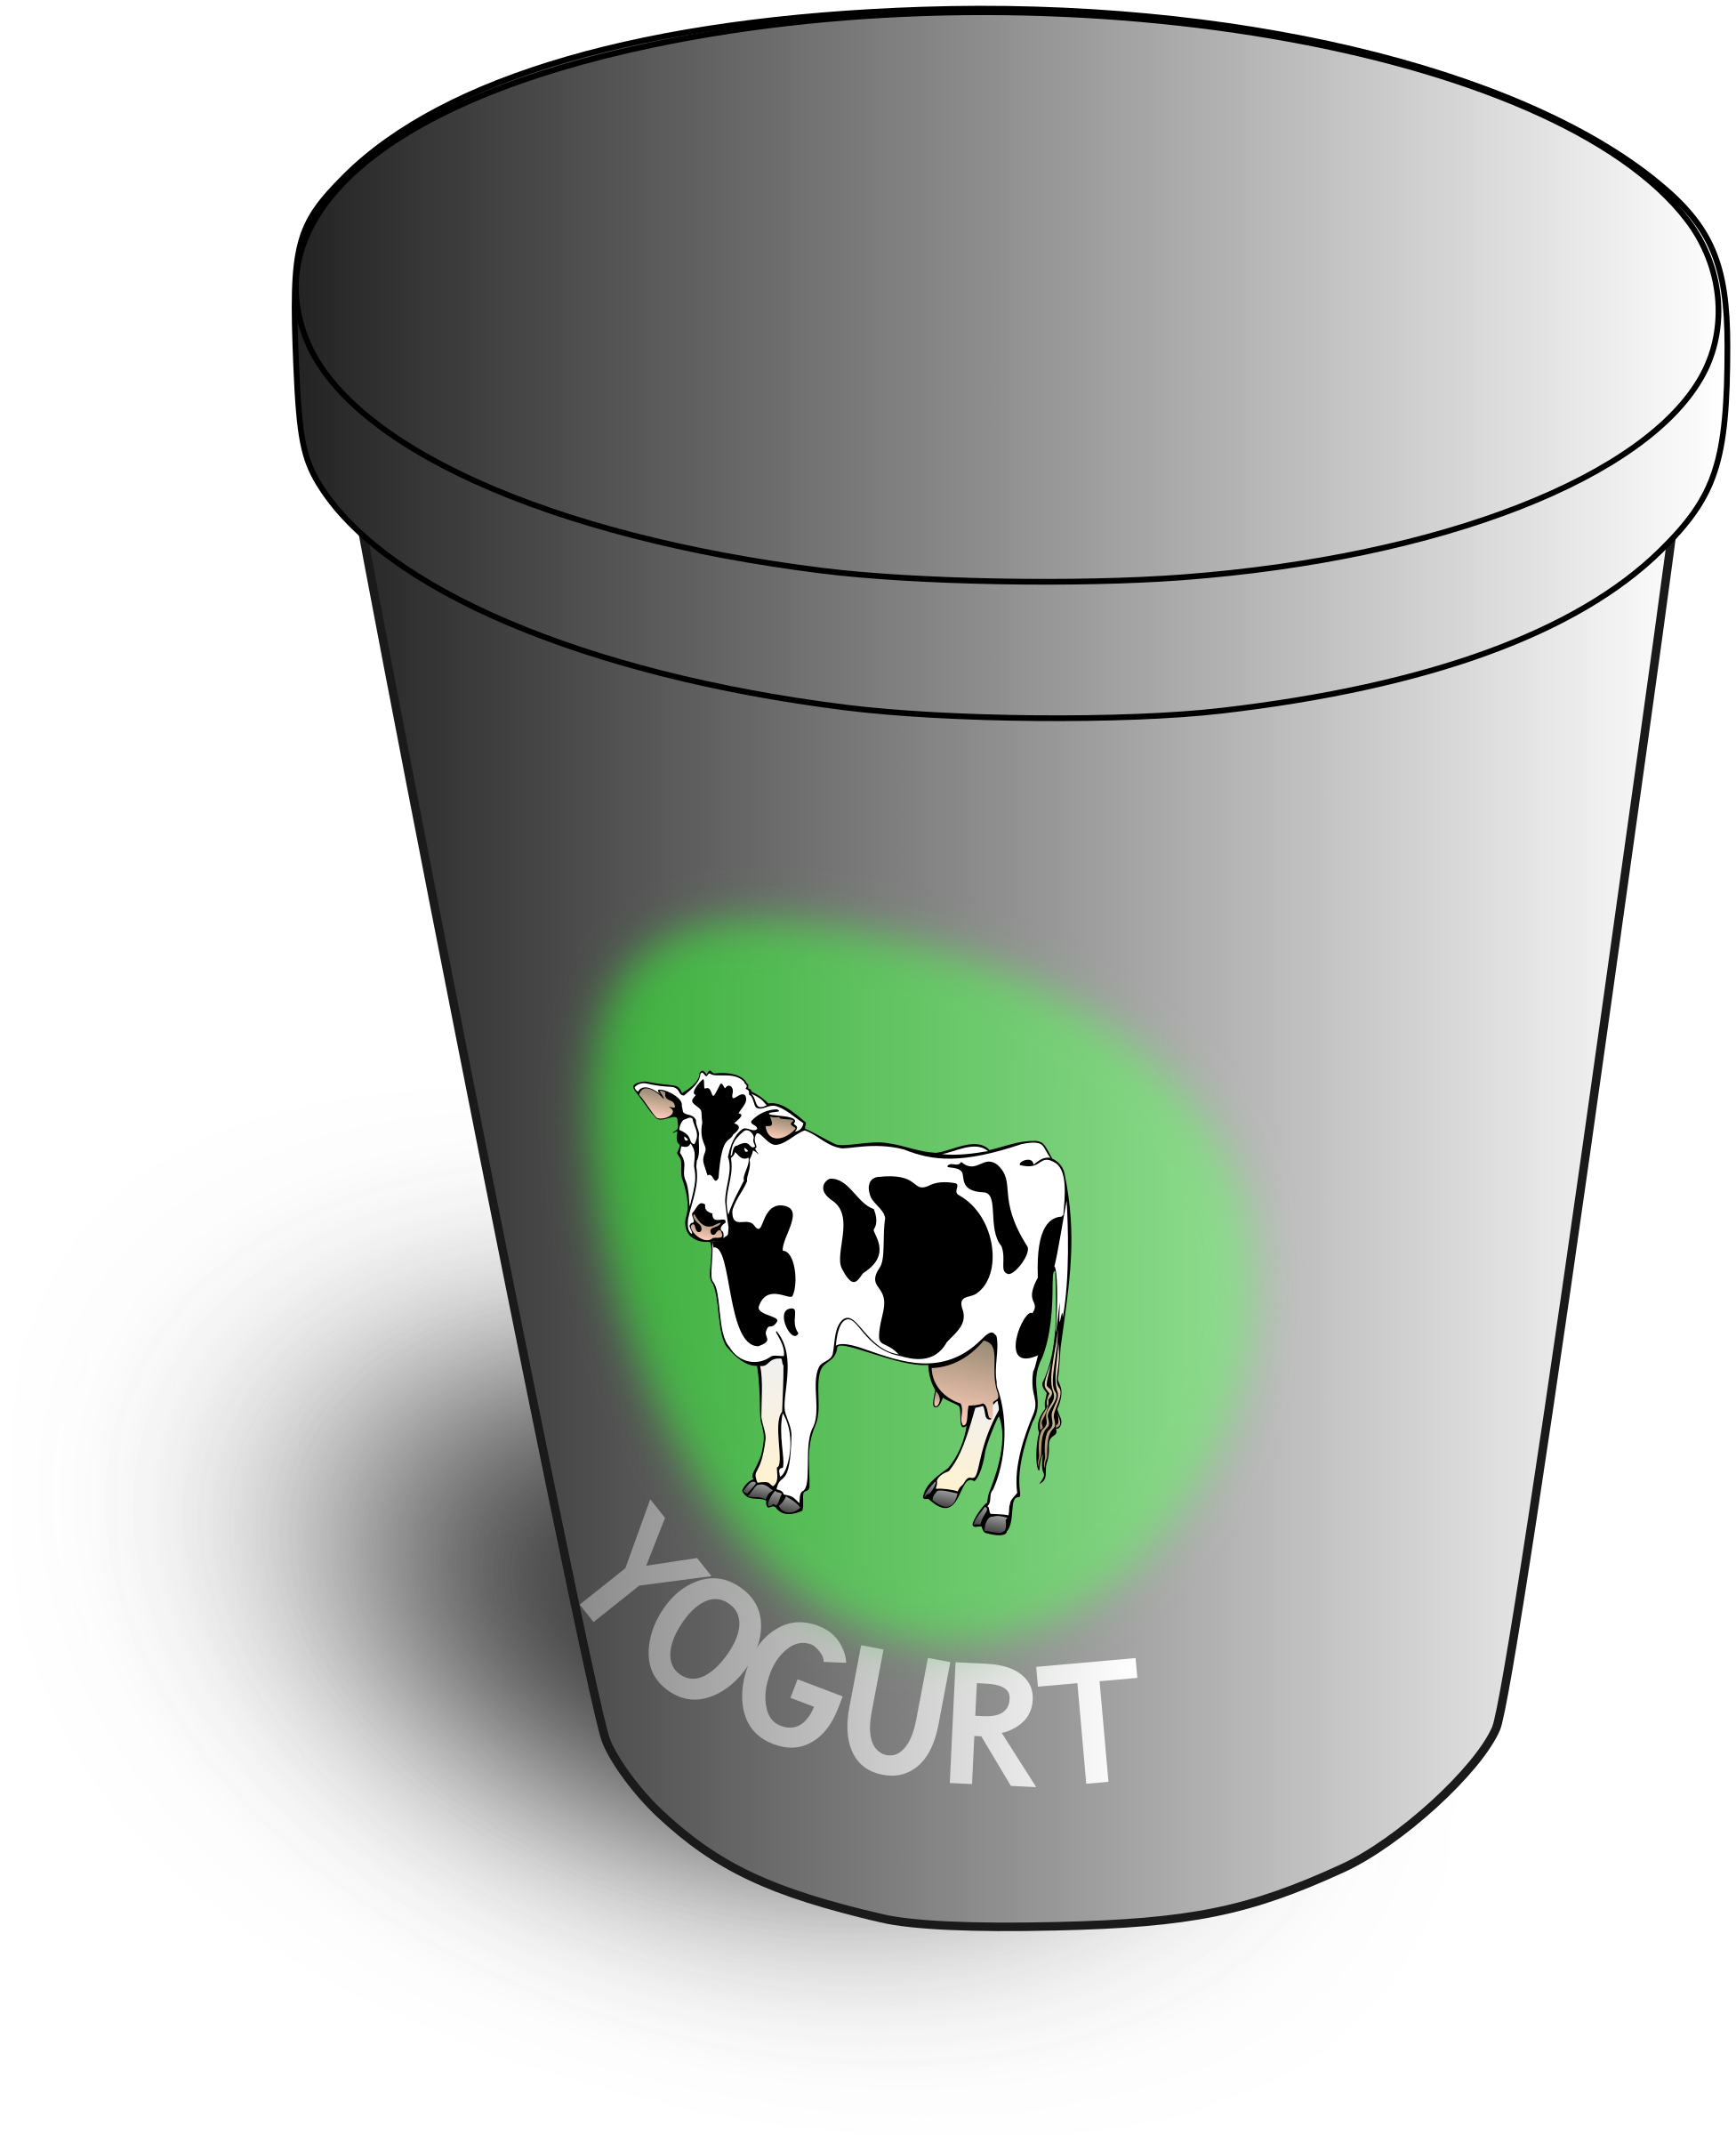 Yogurt clipart yogurt cup.  collection of container